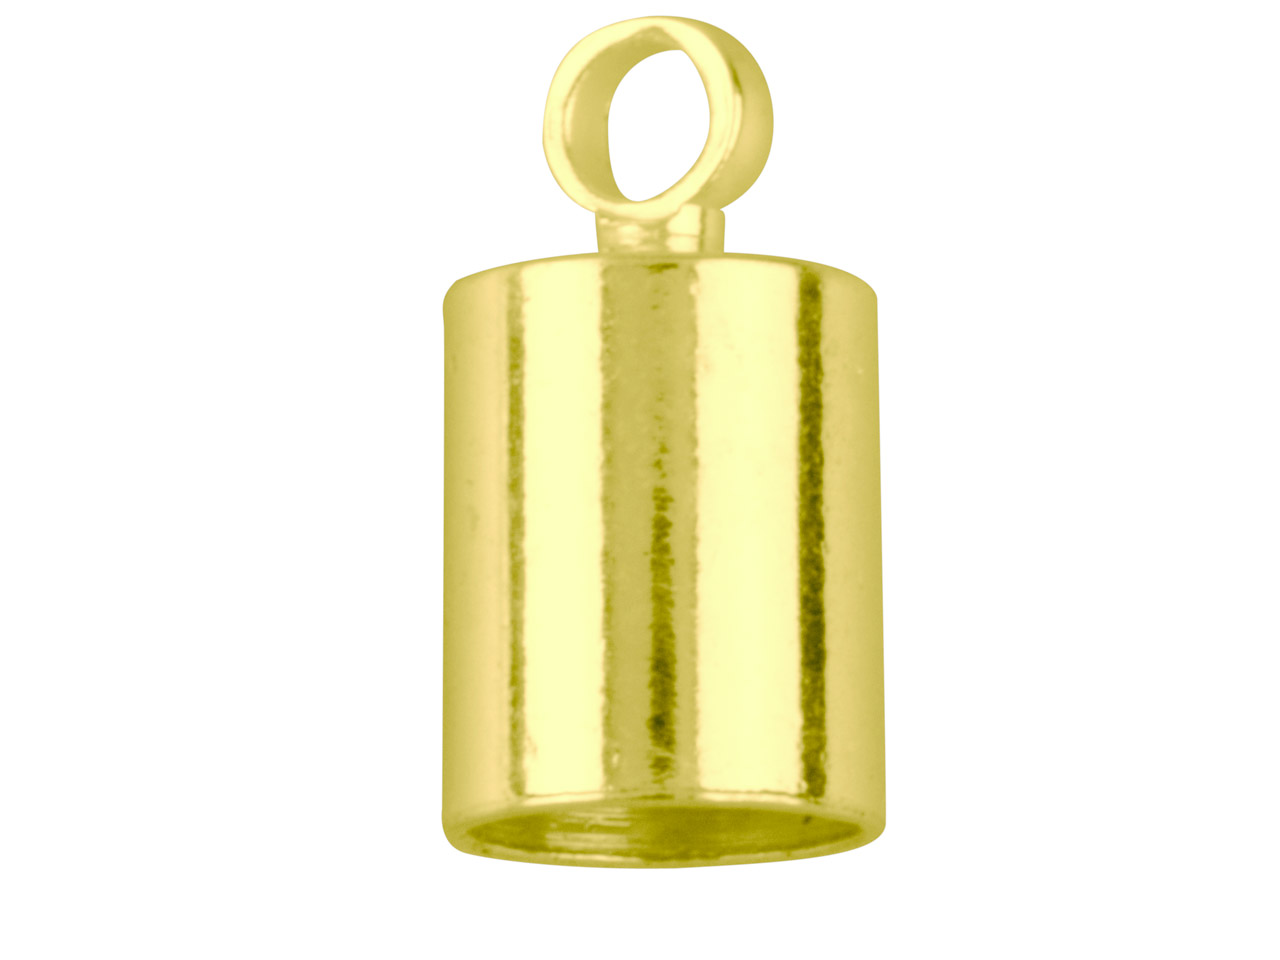 Gold Plated Chain End Caps 5mm     Pack of 10